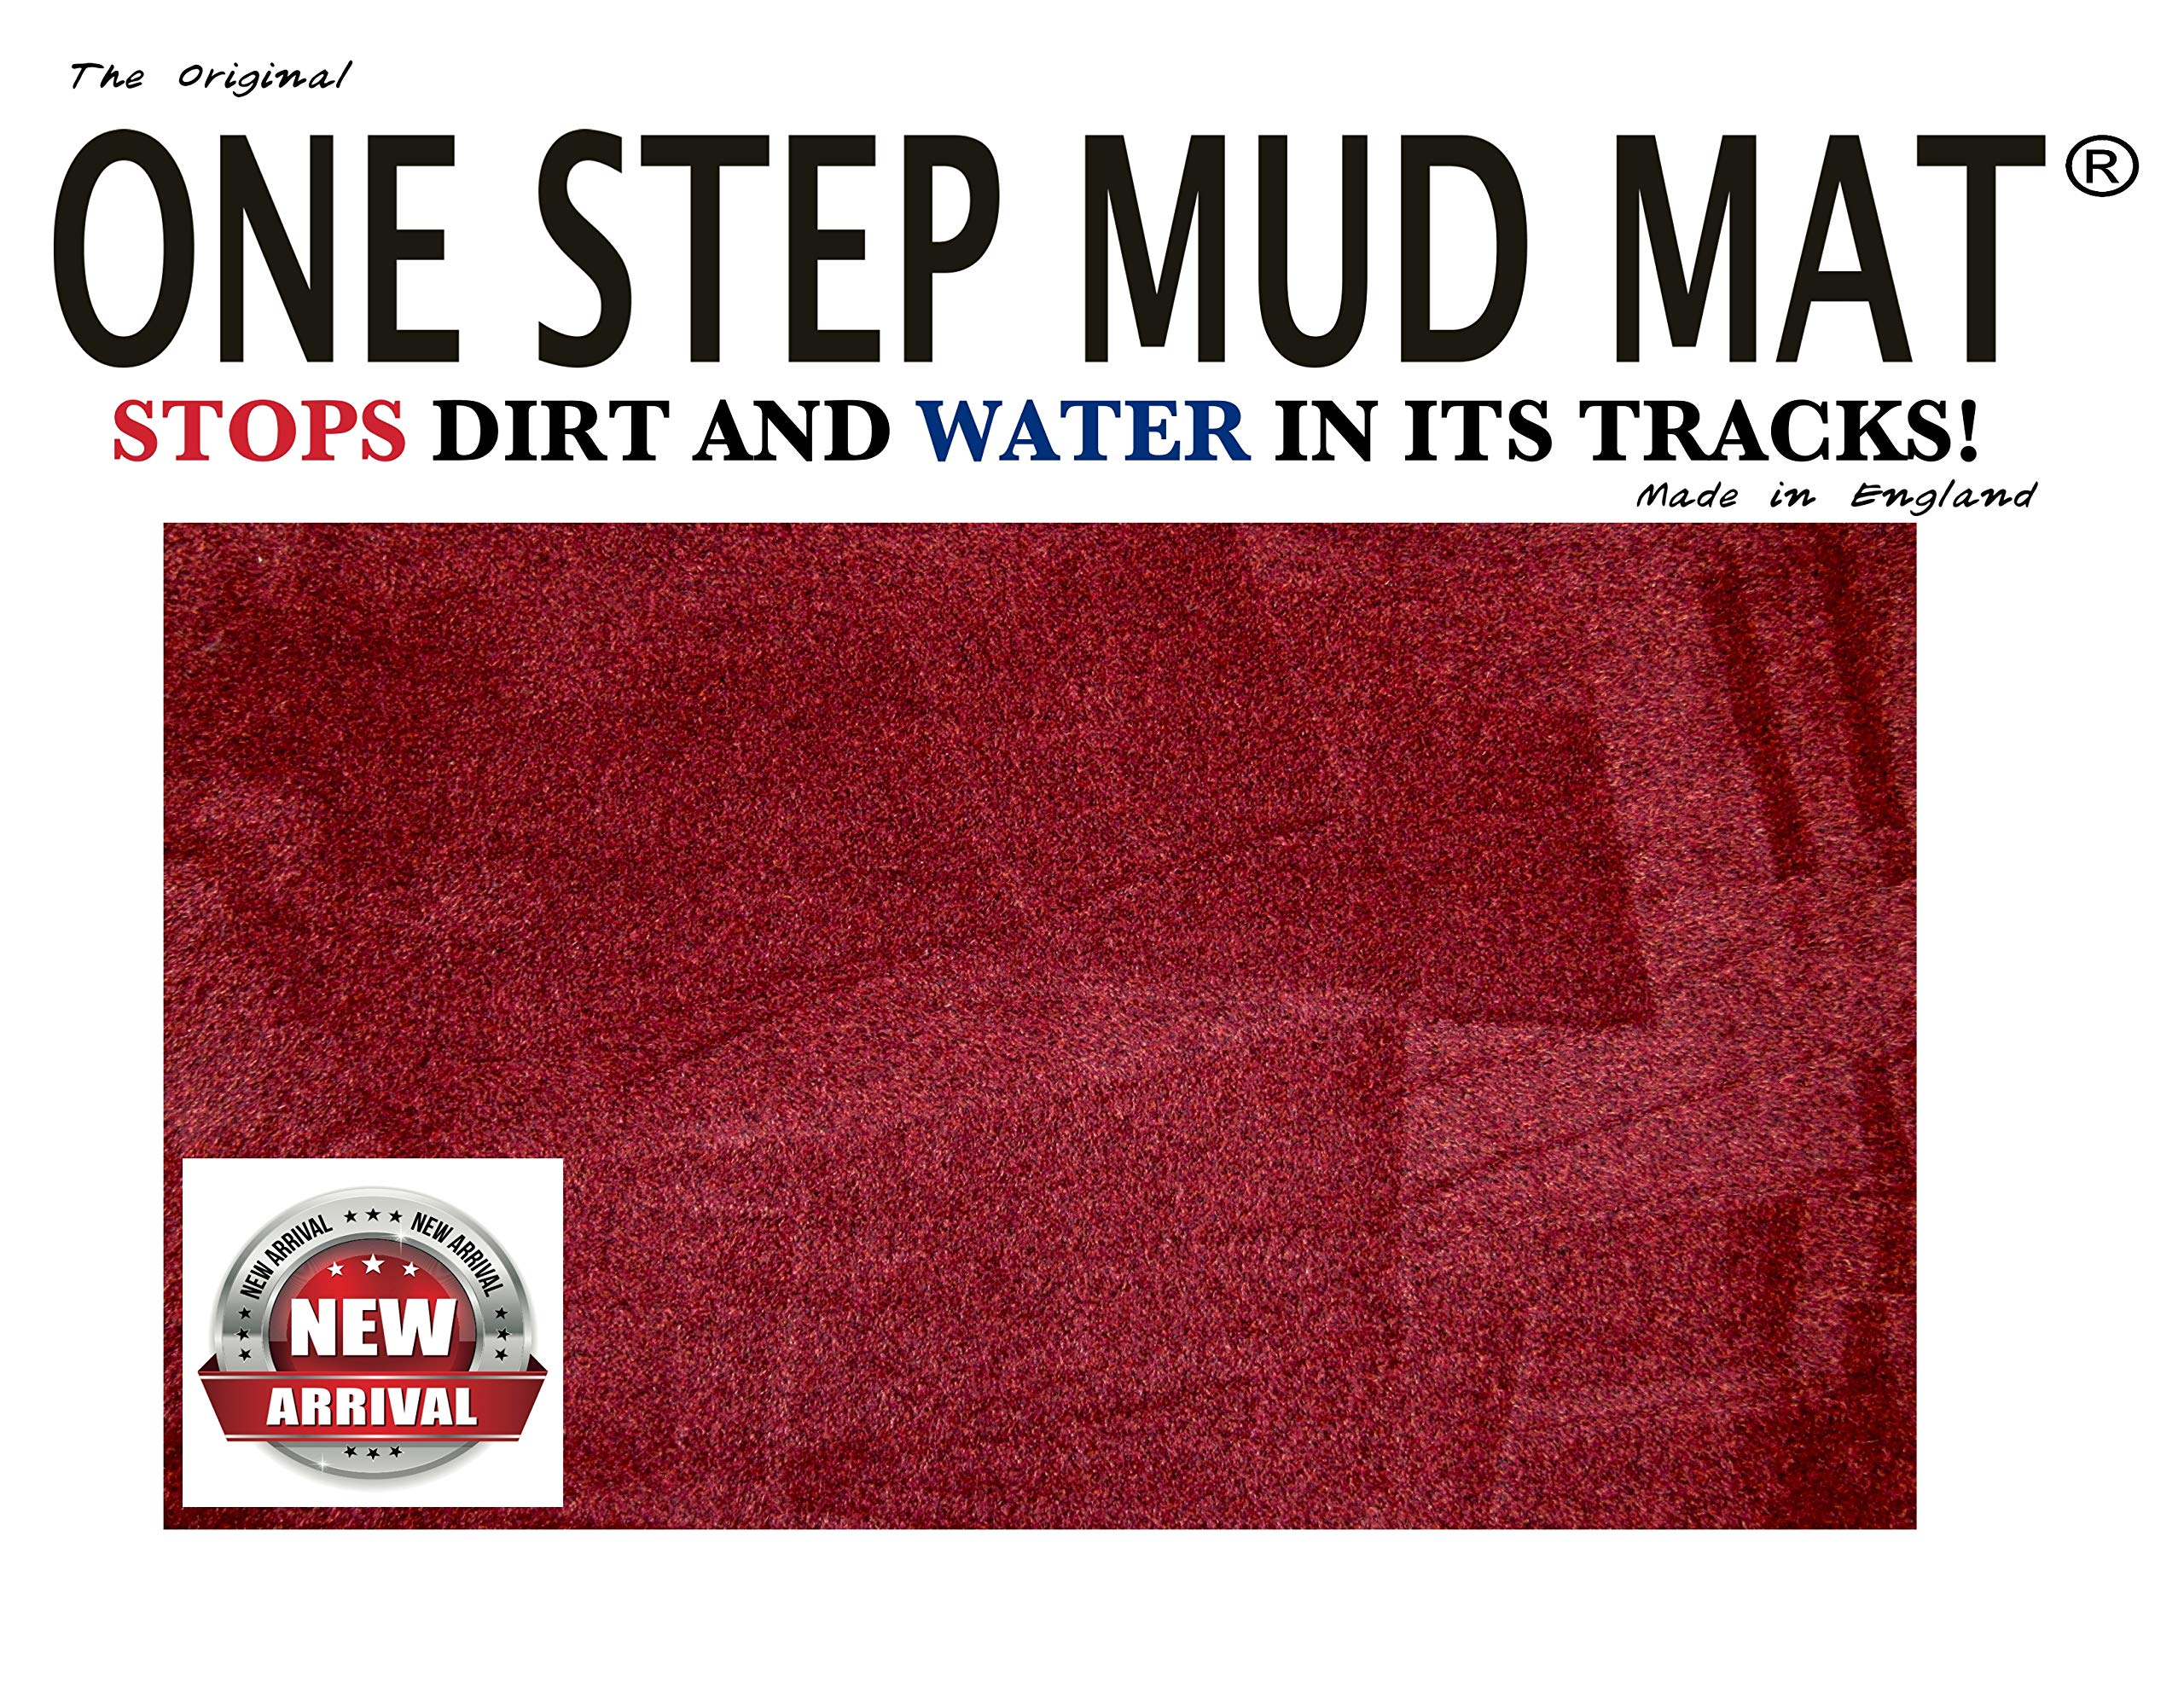 one Step mud mat one Step mud mat one Step mud mat one Step mud mat One Step mud mat (Large, Red) by ONE STEP MUD MAT STOPS DIRT AND WATER IN ITS TRACKS!